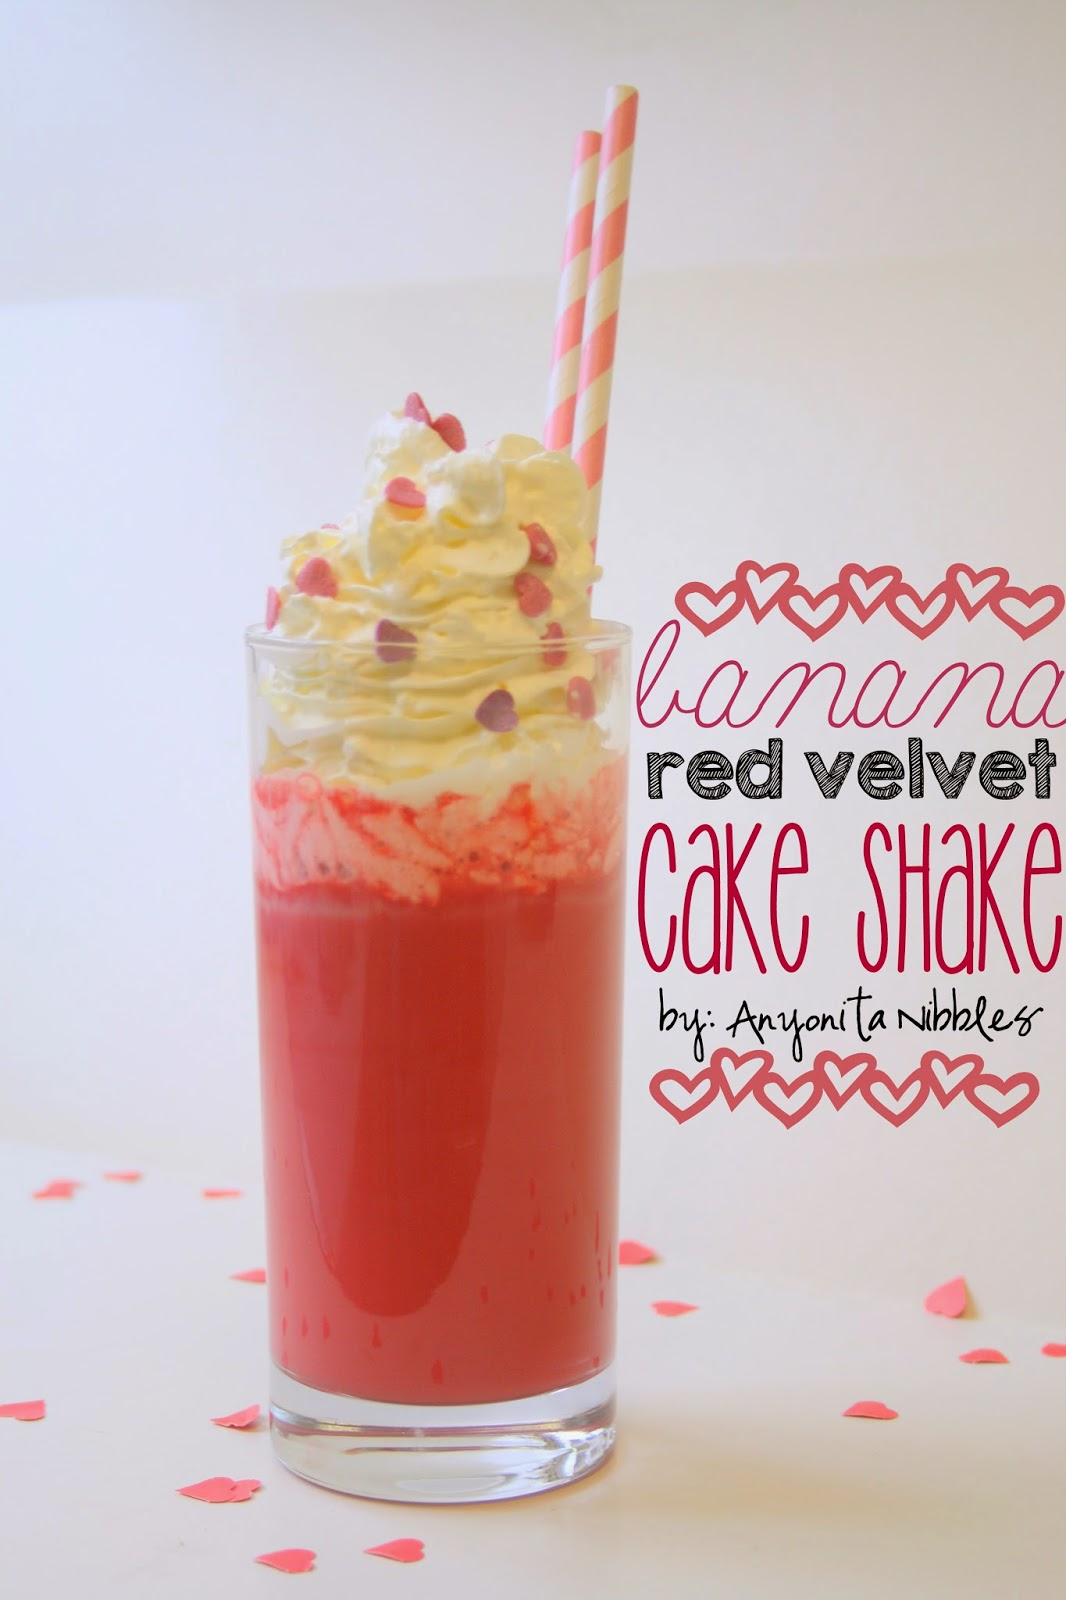 Banana Red Velvet Cake Shake from Anyonita-nibbles.co.uk